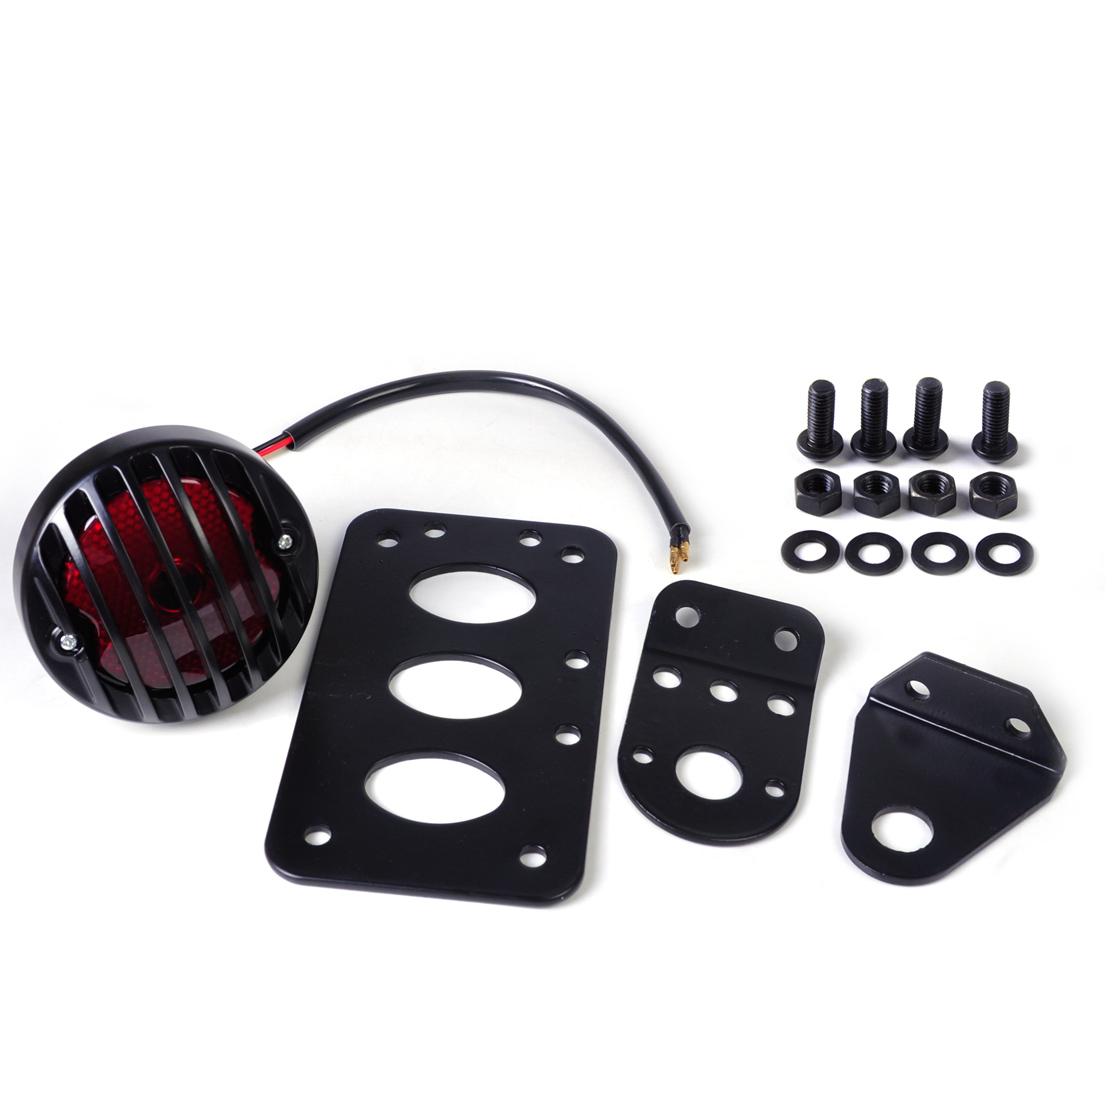 beler New Ribbed Round Tail Brake Light License Plate Bracket with Screw Accessory Set fit for Motorcycle Harley Bobber Chopper